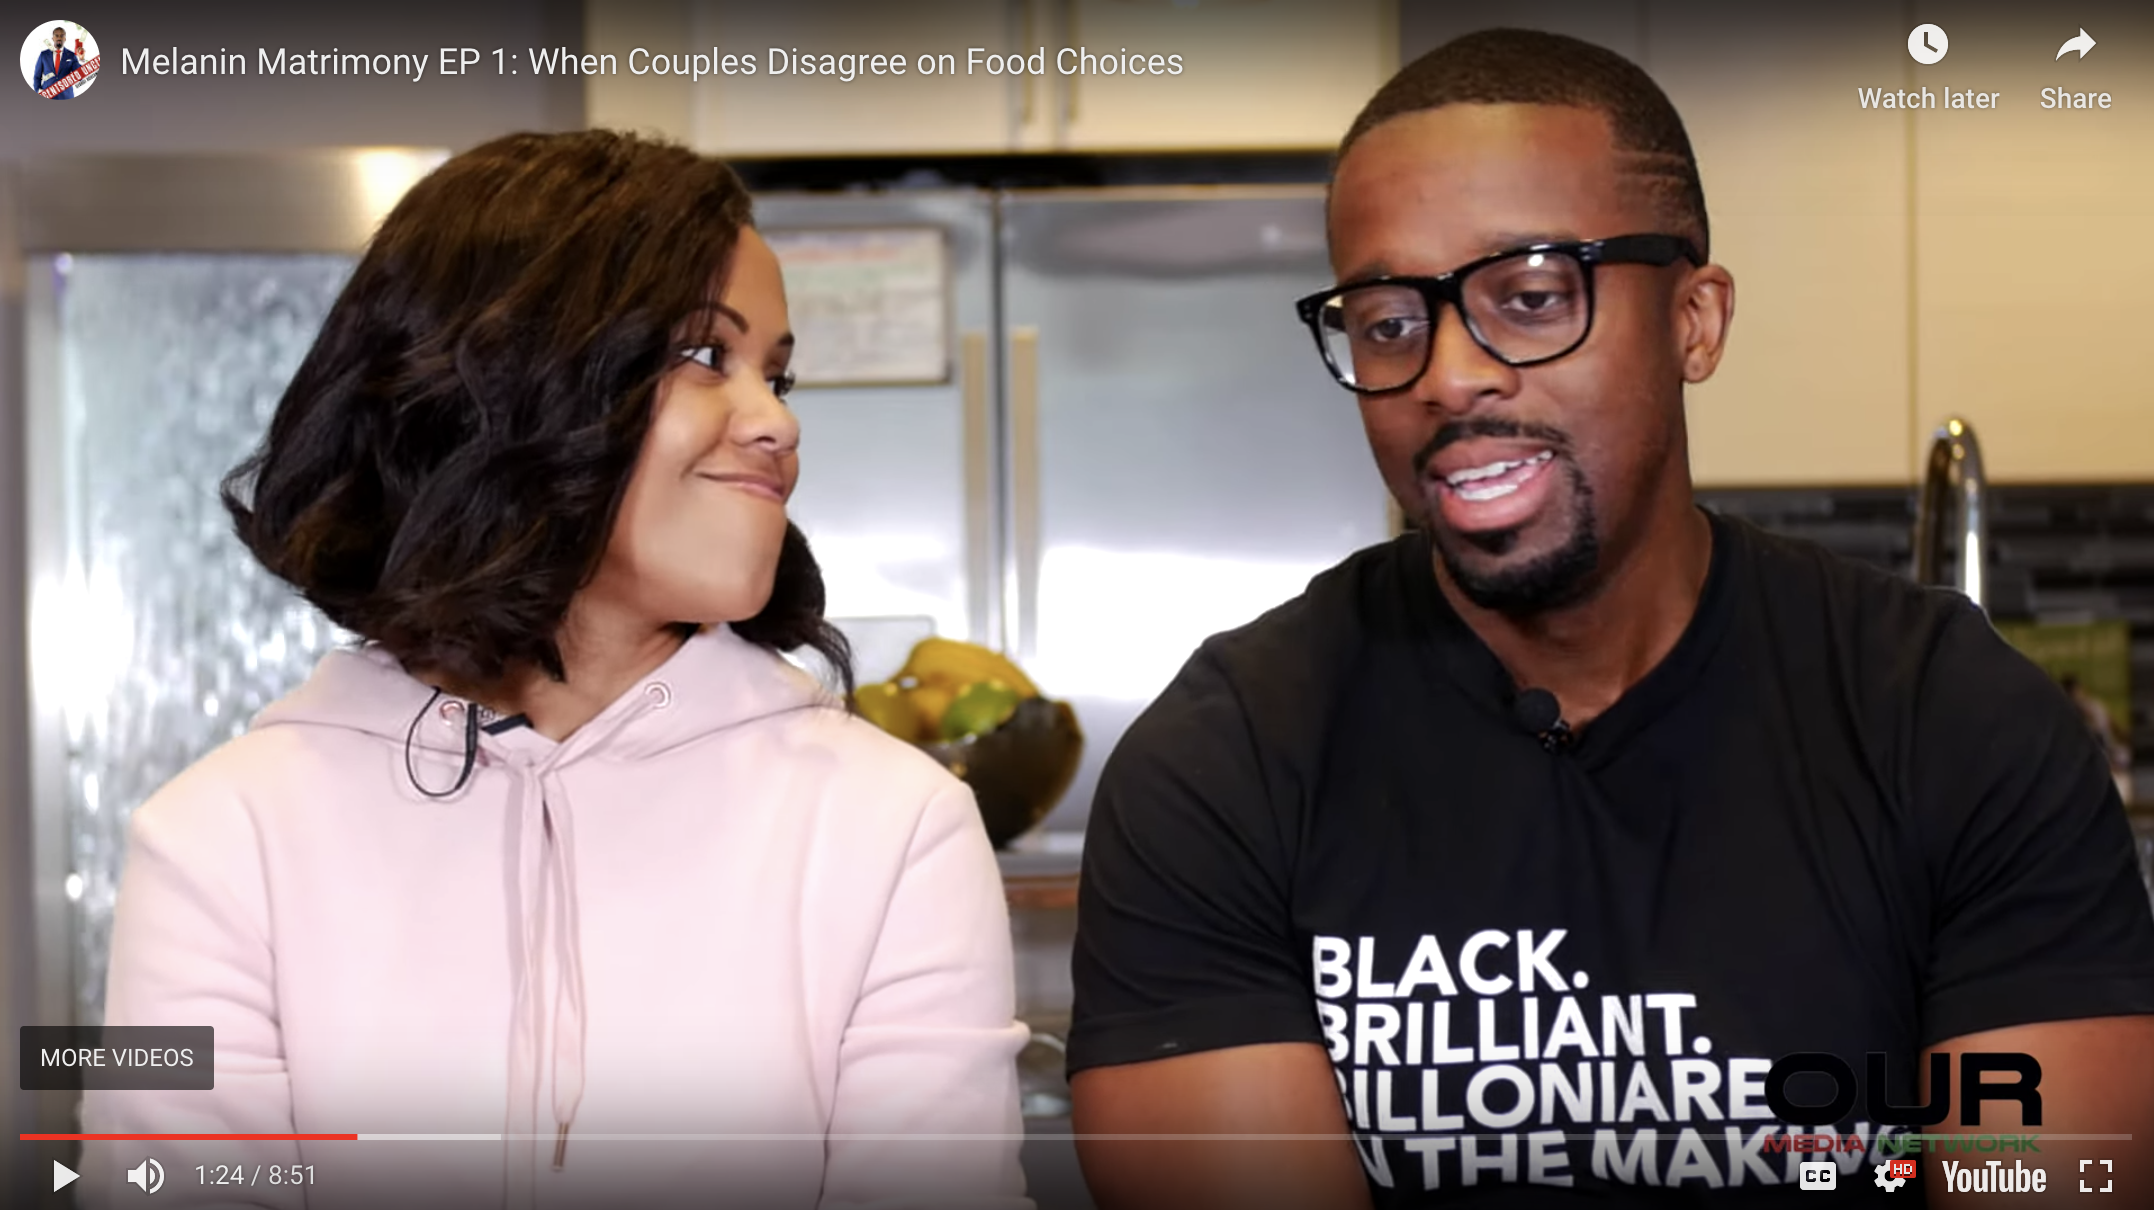 Melanin Matrimony EP 1: When Couples Disagree on Food Choices